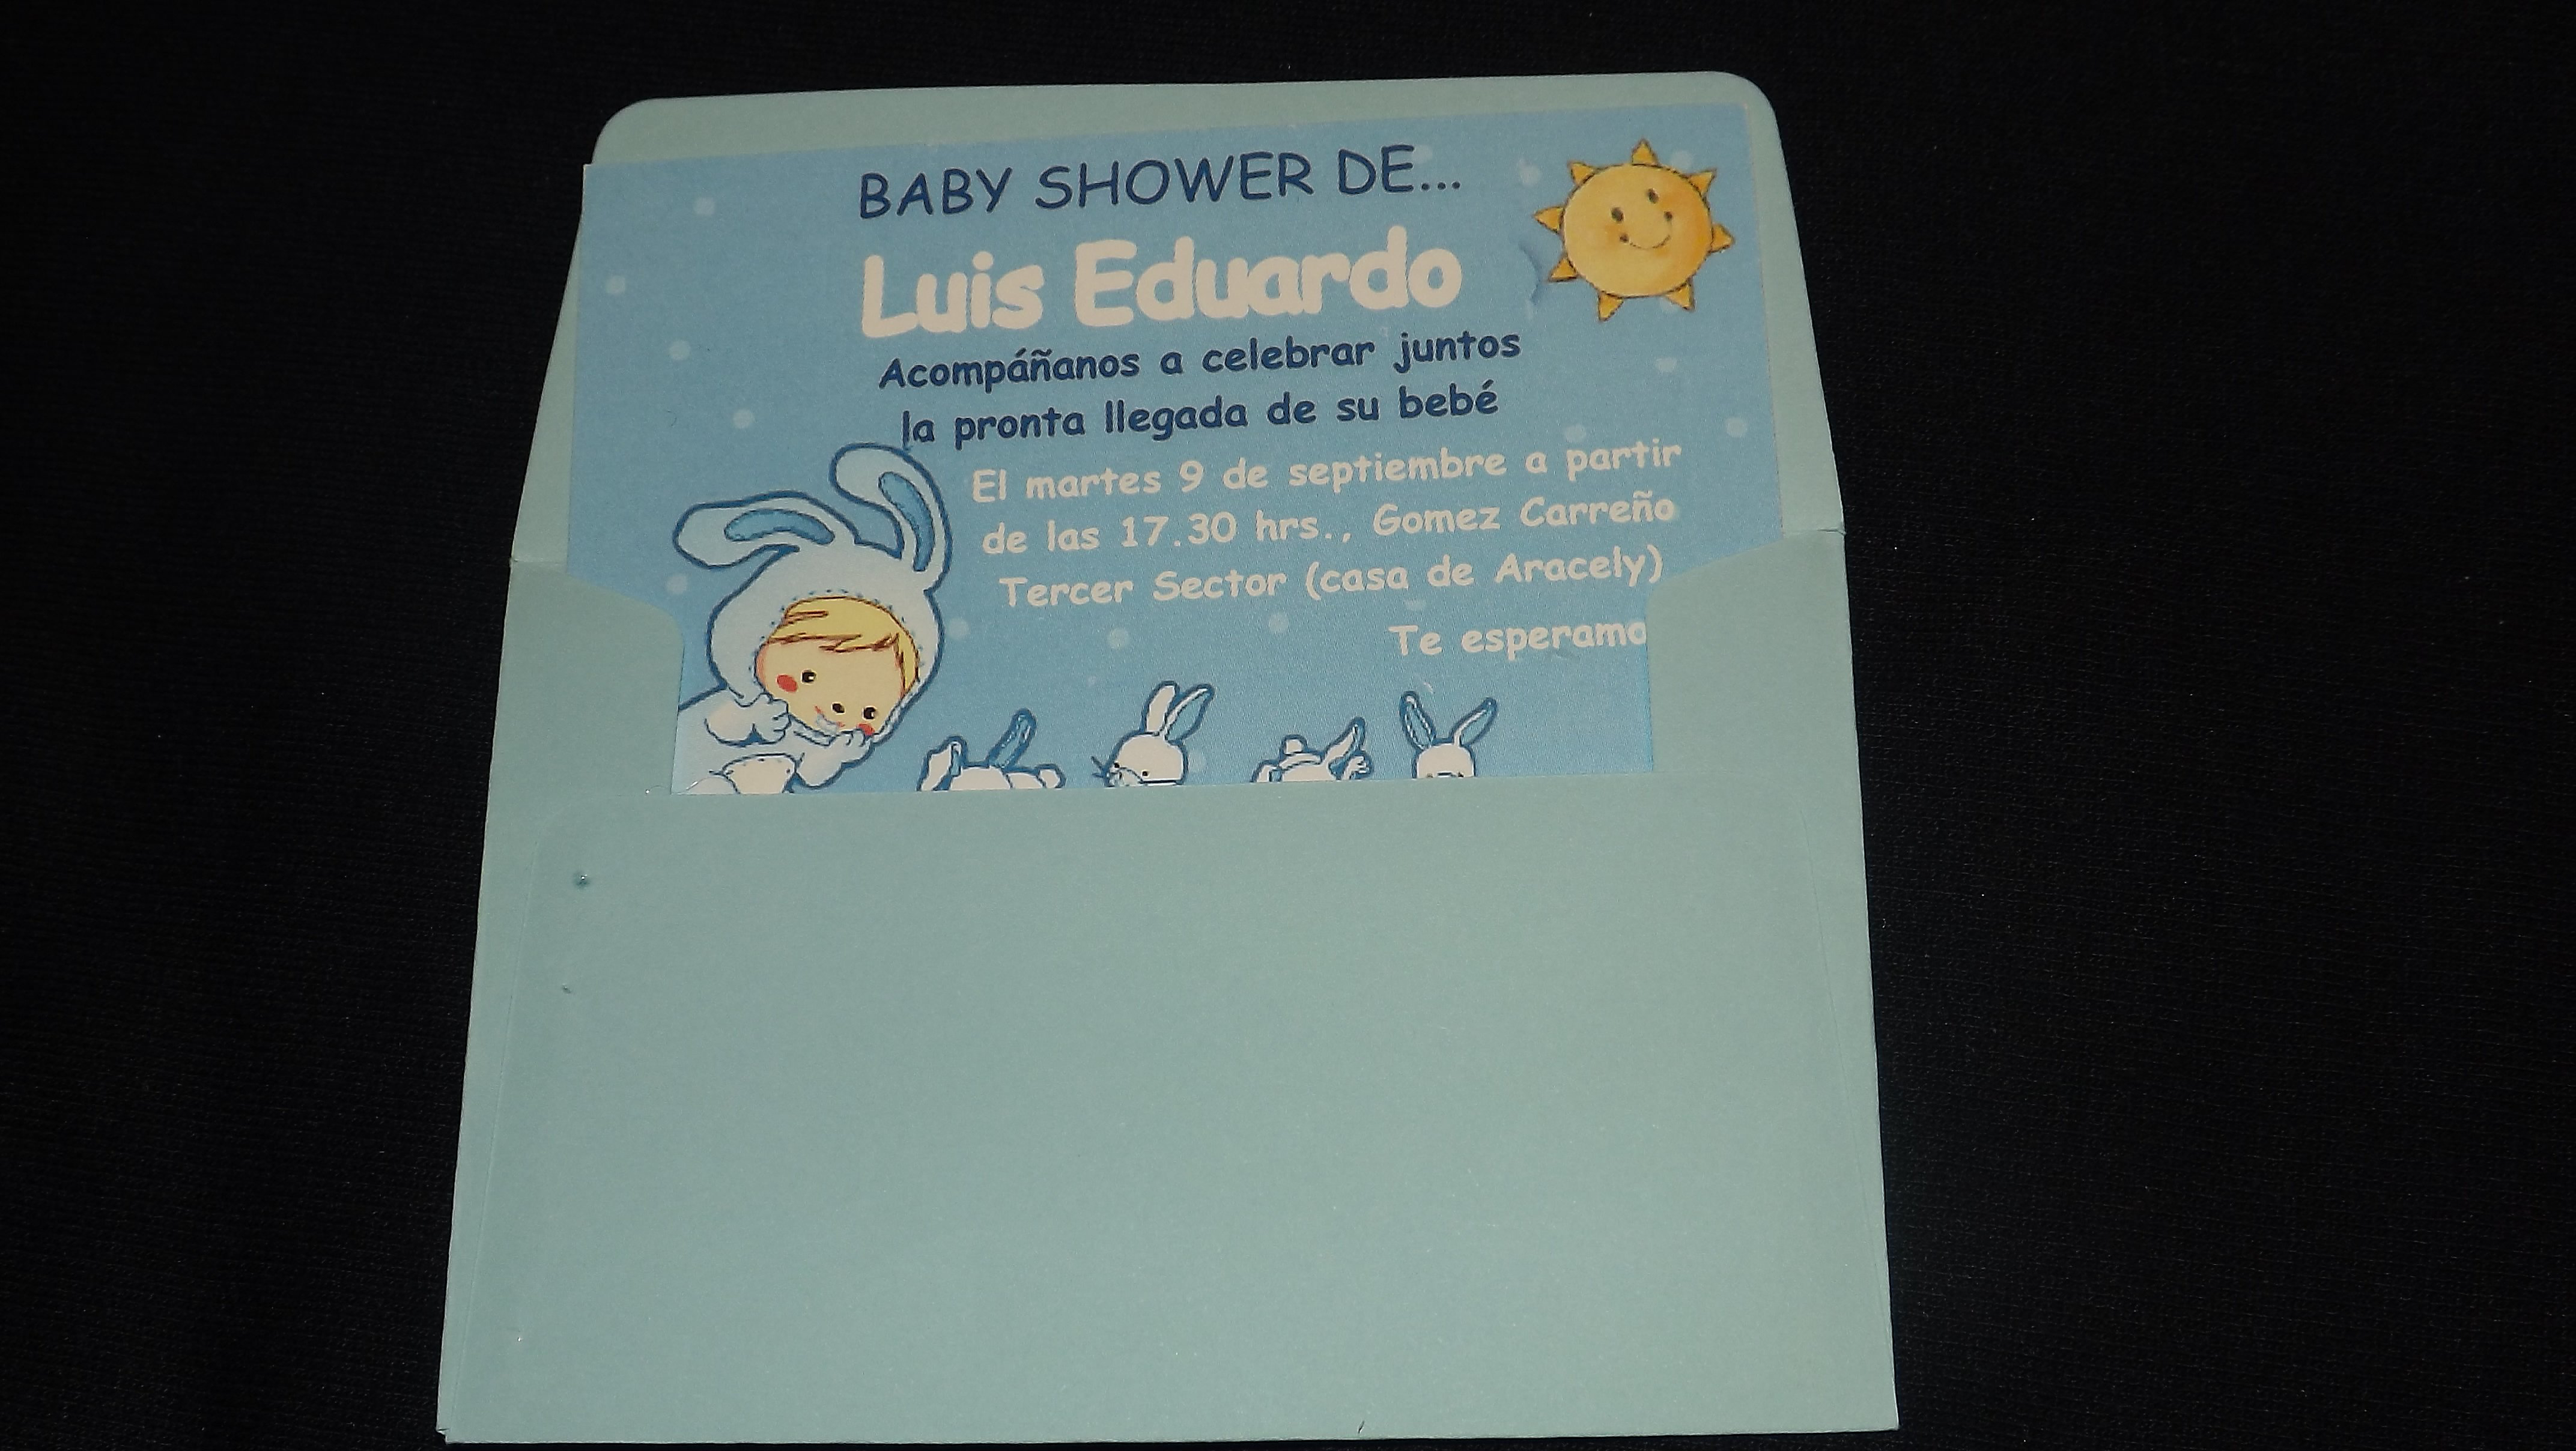 Invitación Baby Shower.JPG